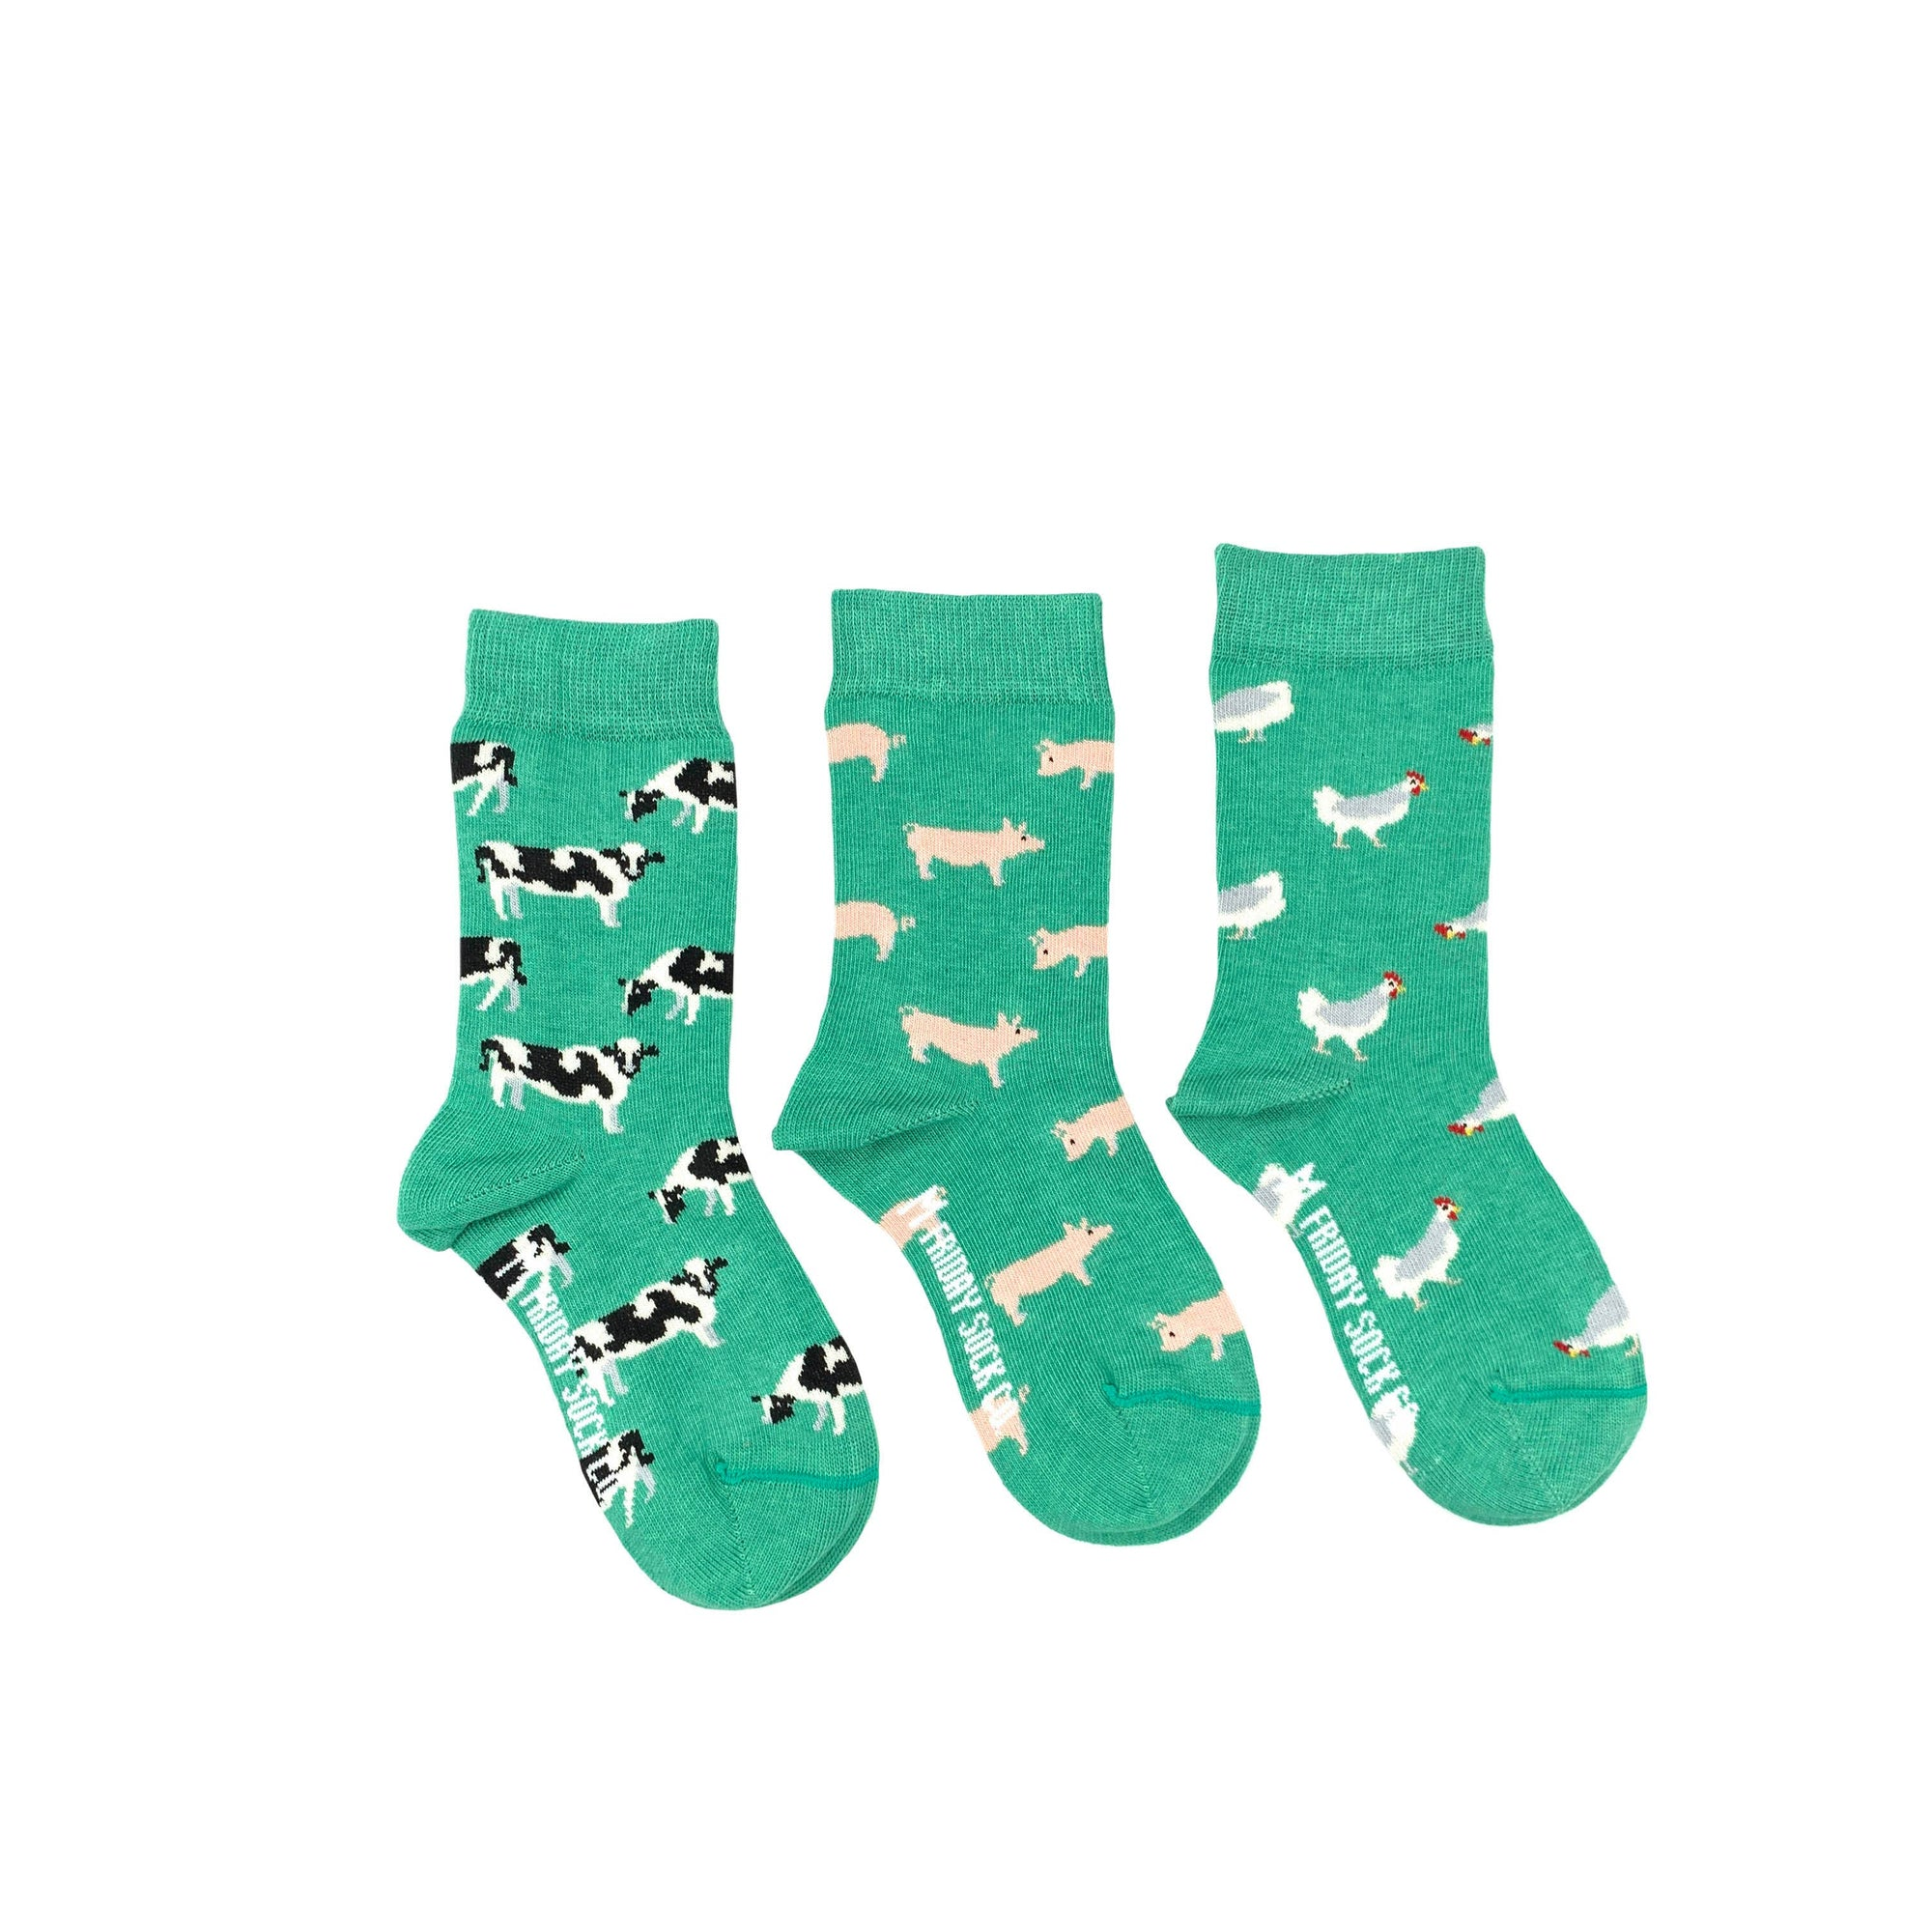 Friday Sock Co. Kid's Socks | Farm Animals | Mismatched